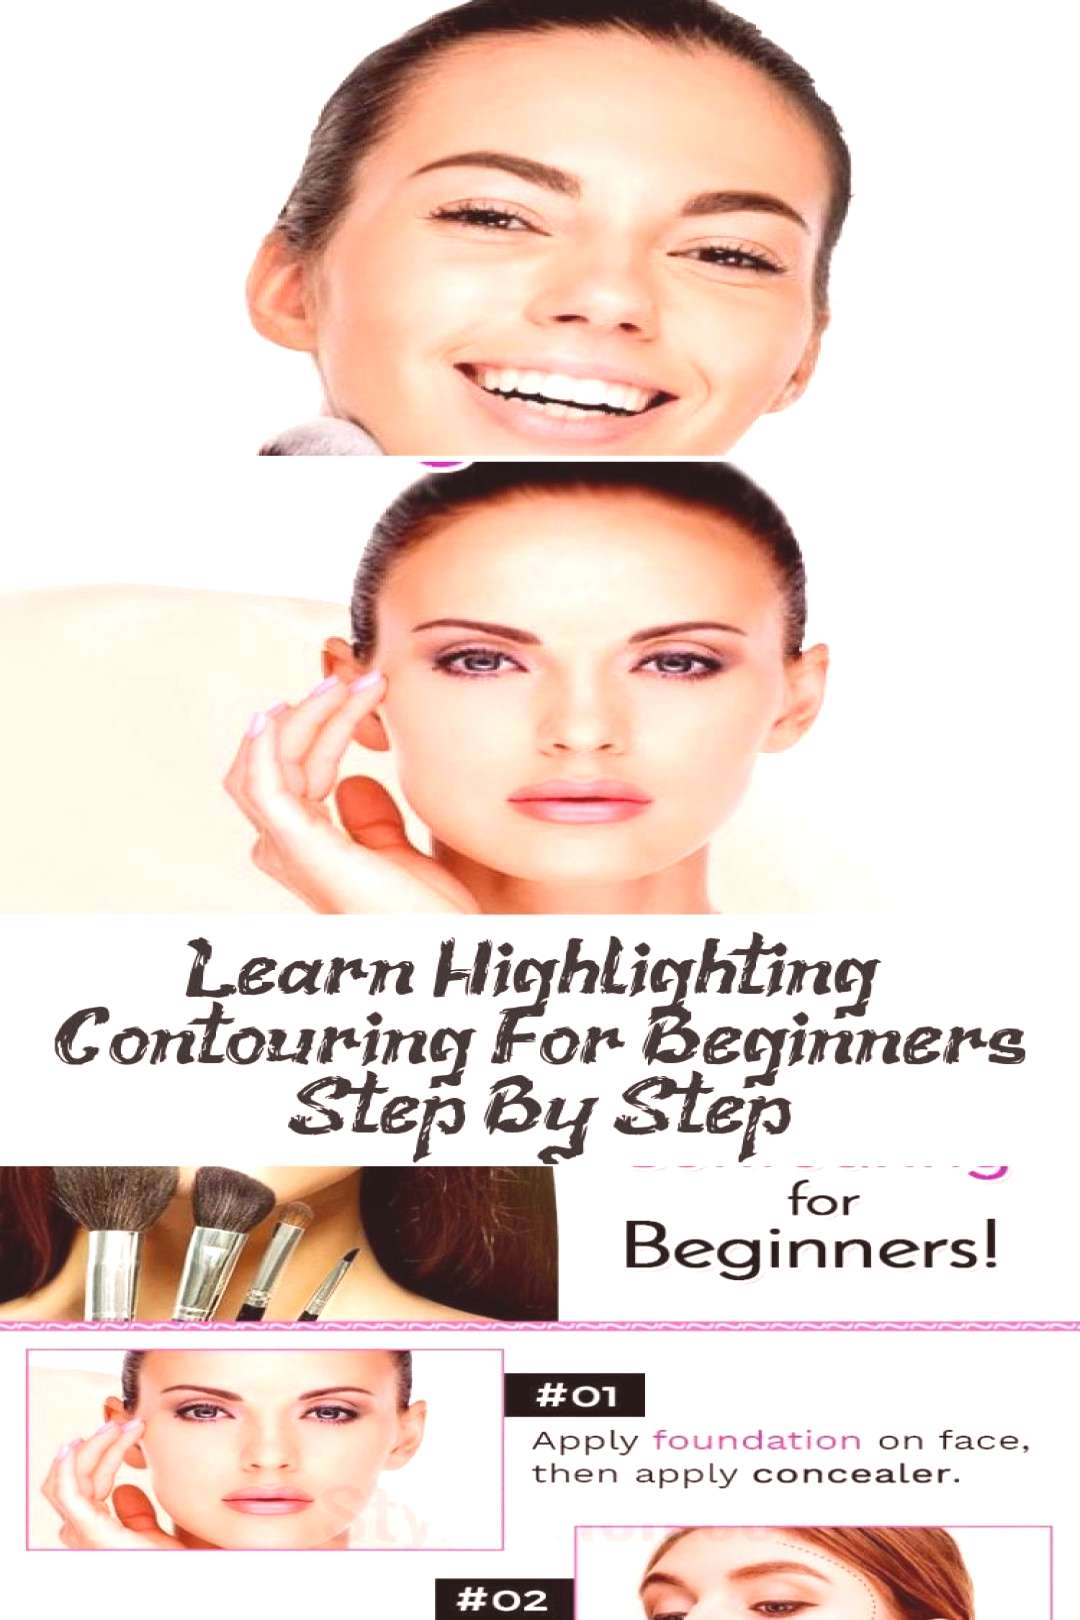 Learn step-by-step highlighting and contouring for beginners ... - MAKEUP - Highli ... - Learn step